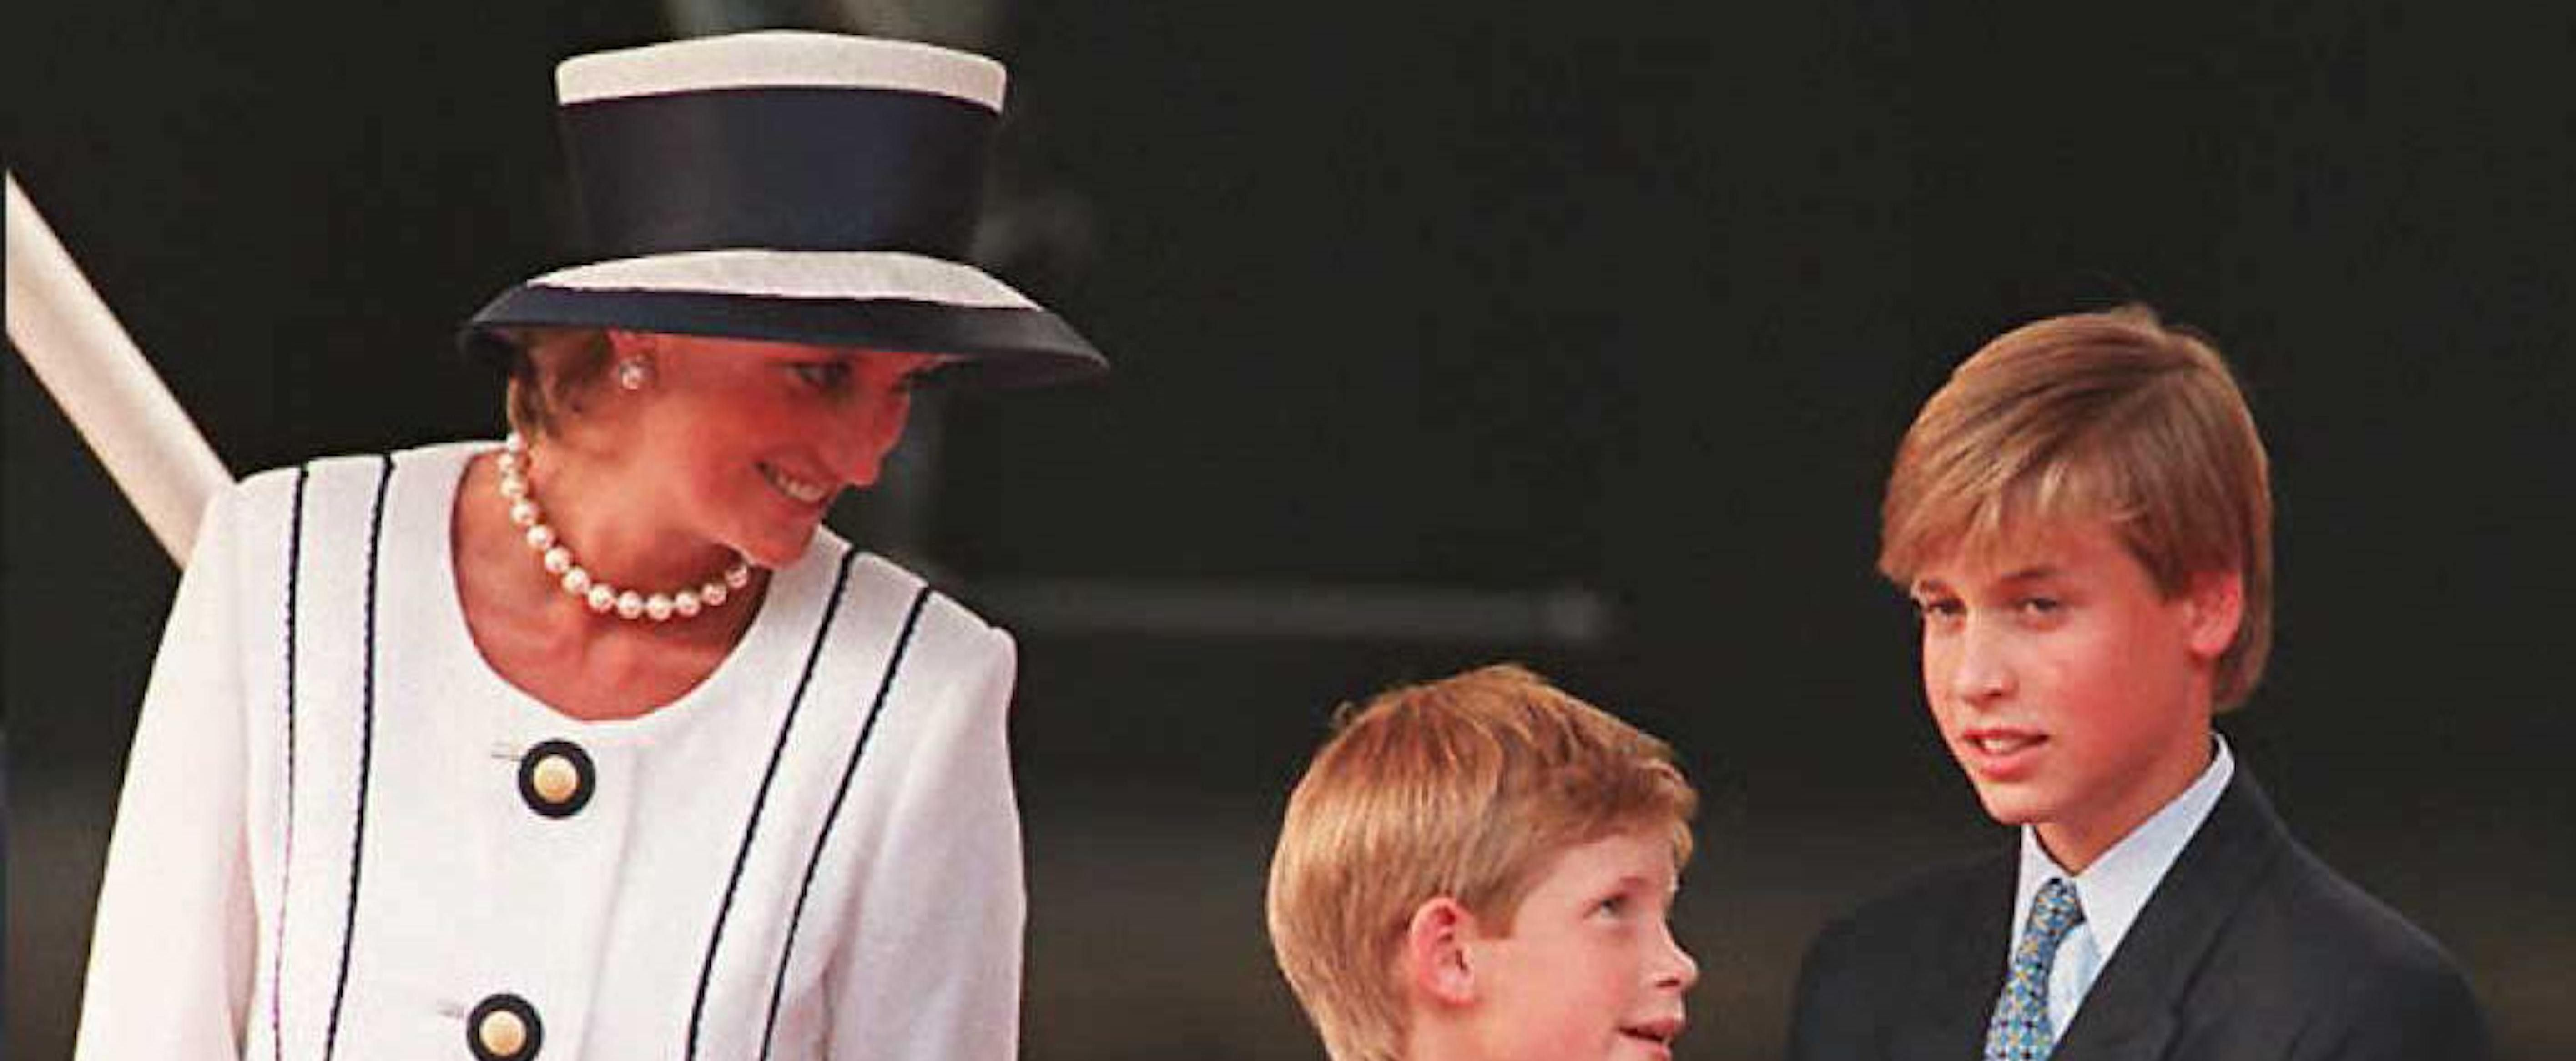 William and Harry's Young Ages When Diana Died Are Still